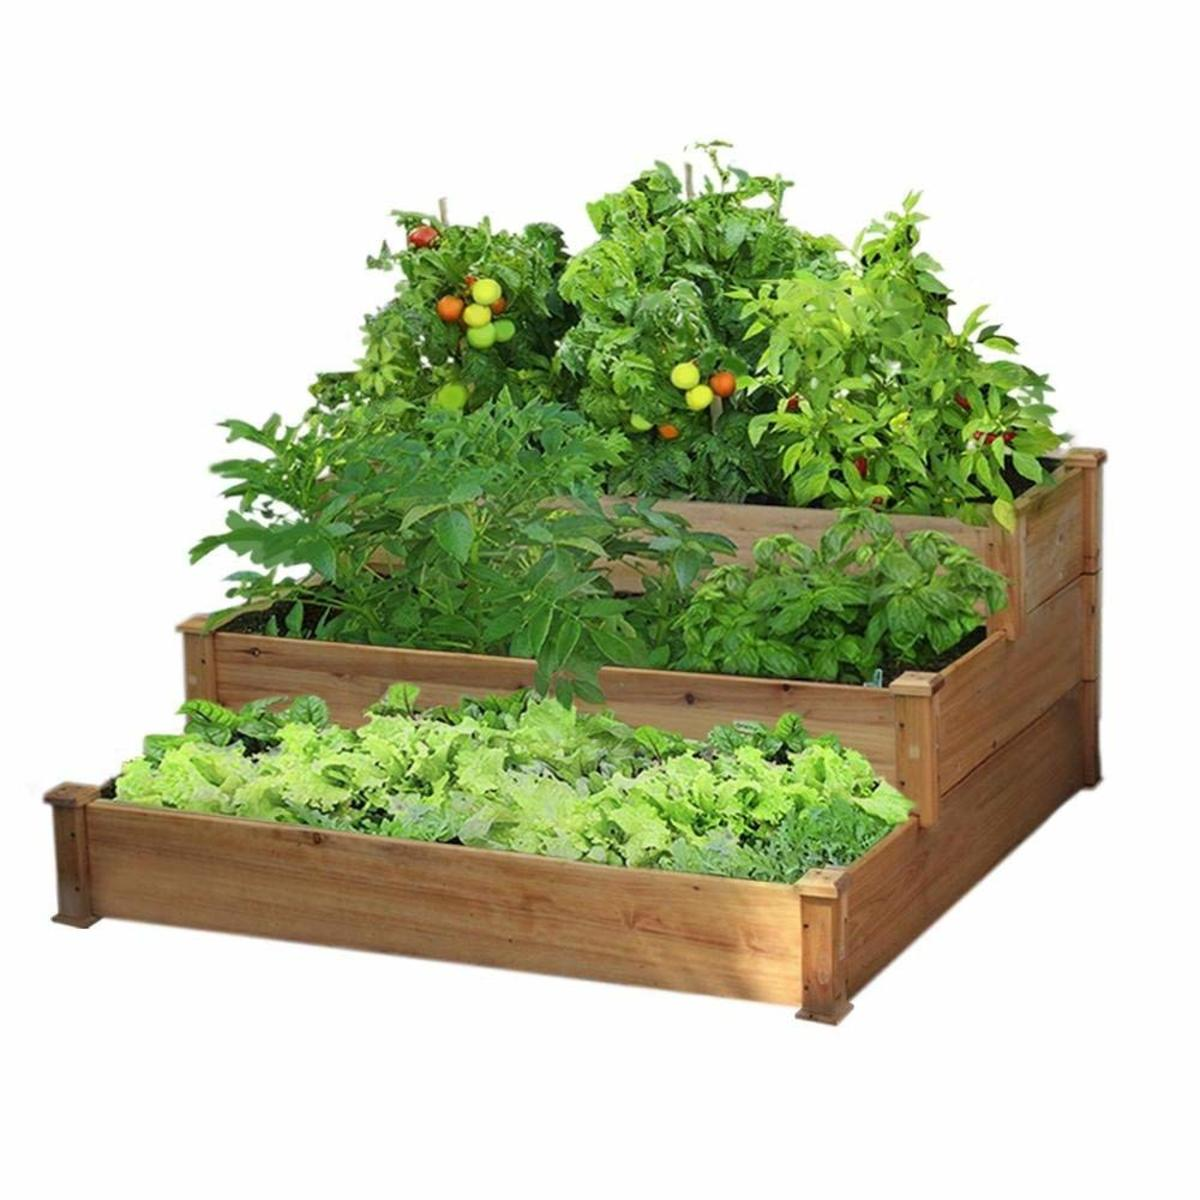 How To Build A Raised Garden Bed Cheap Prefab Kits Diy Plans Dengarden Home And Garden